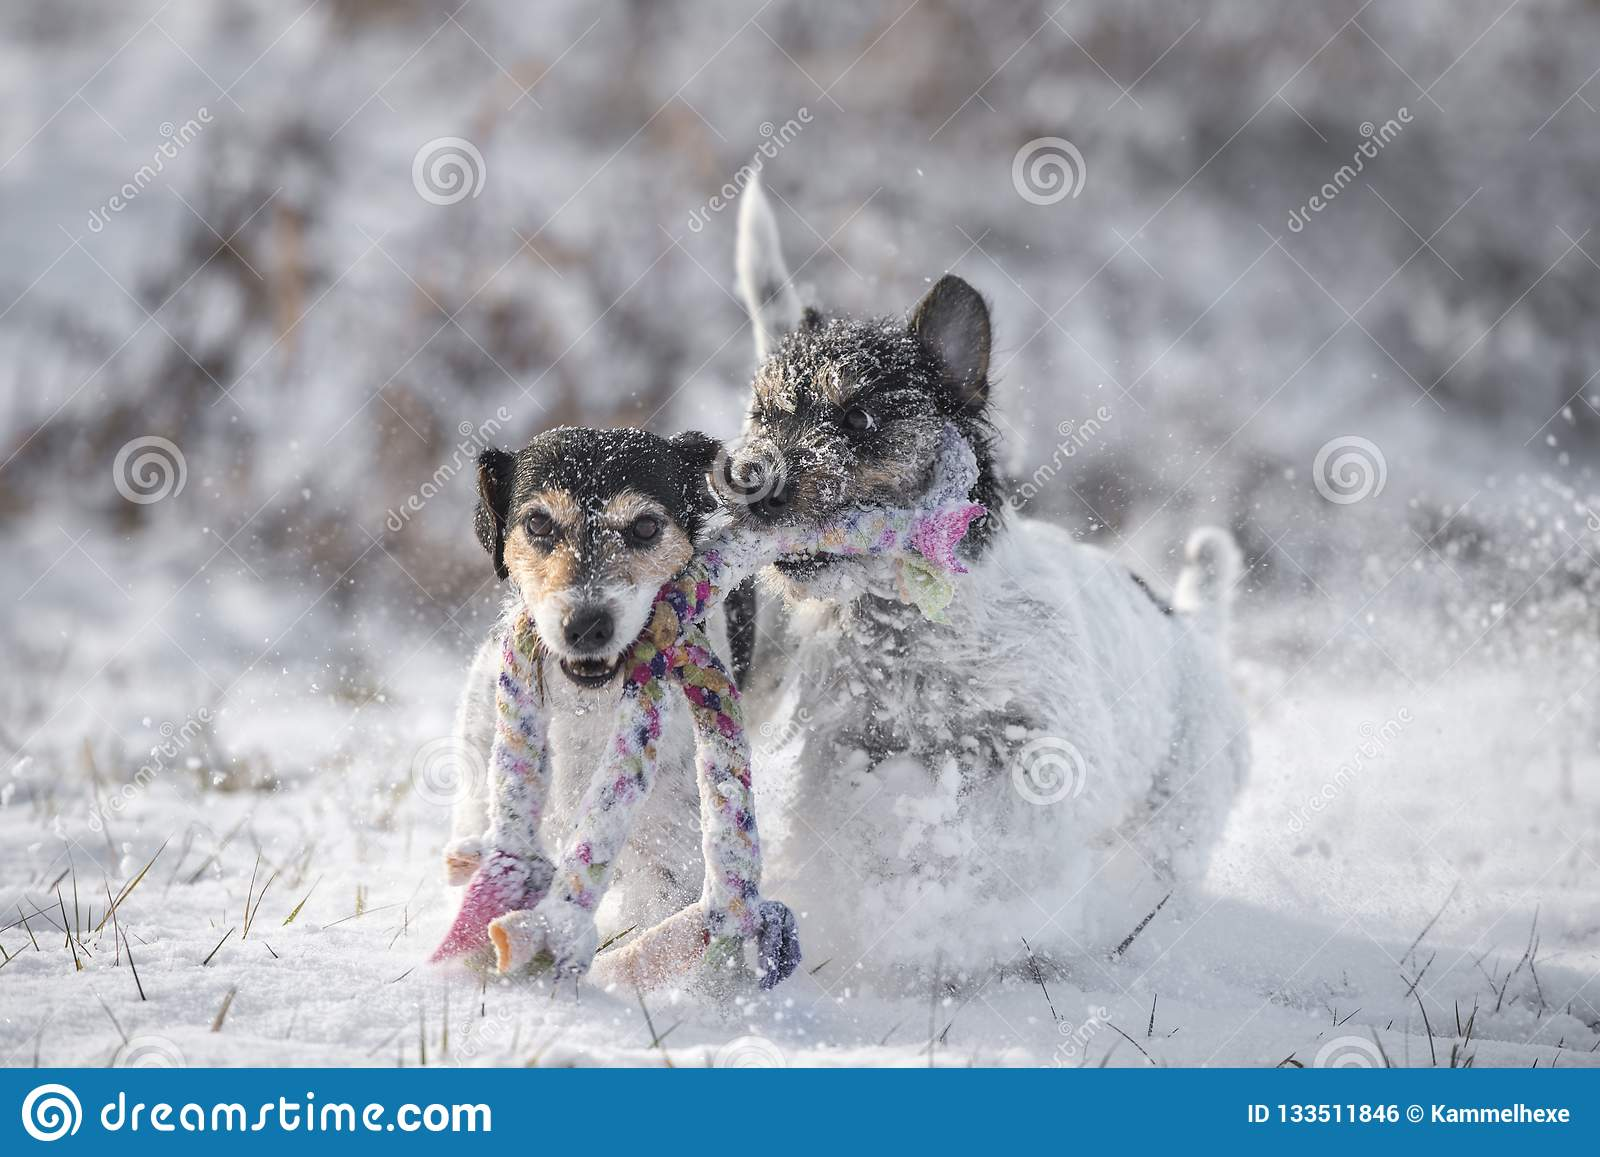 Two Jack Russell Terrier dogs are playing together im snow